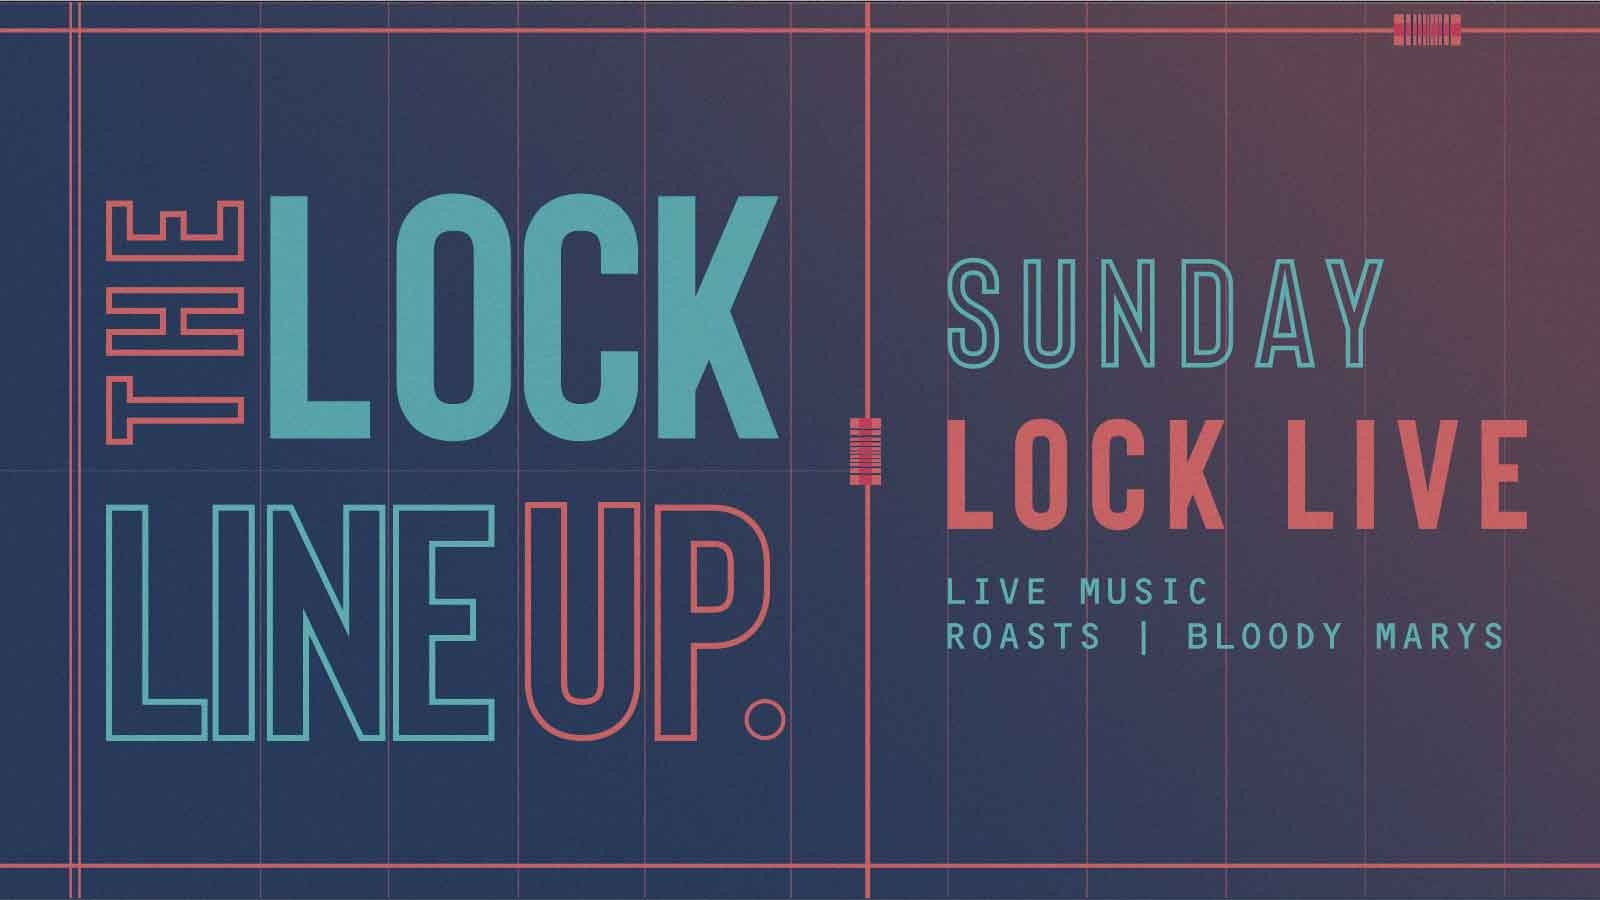 Lock Live – Every Sunday